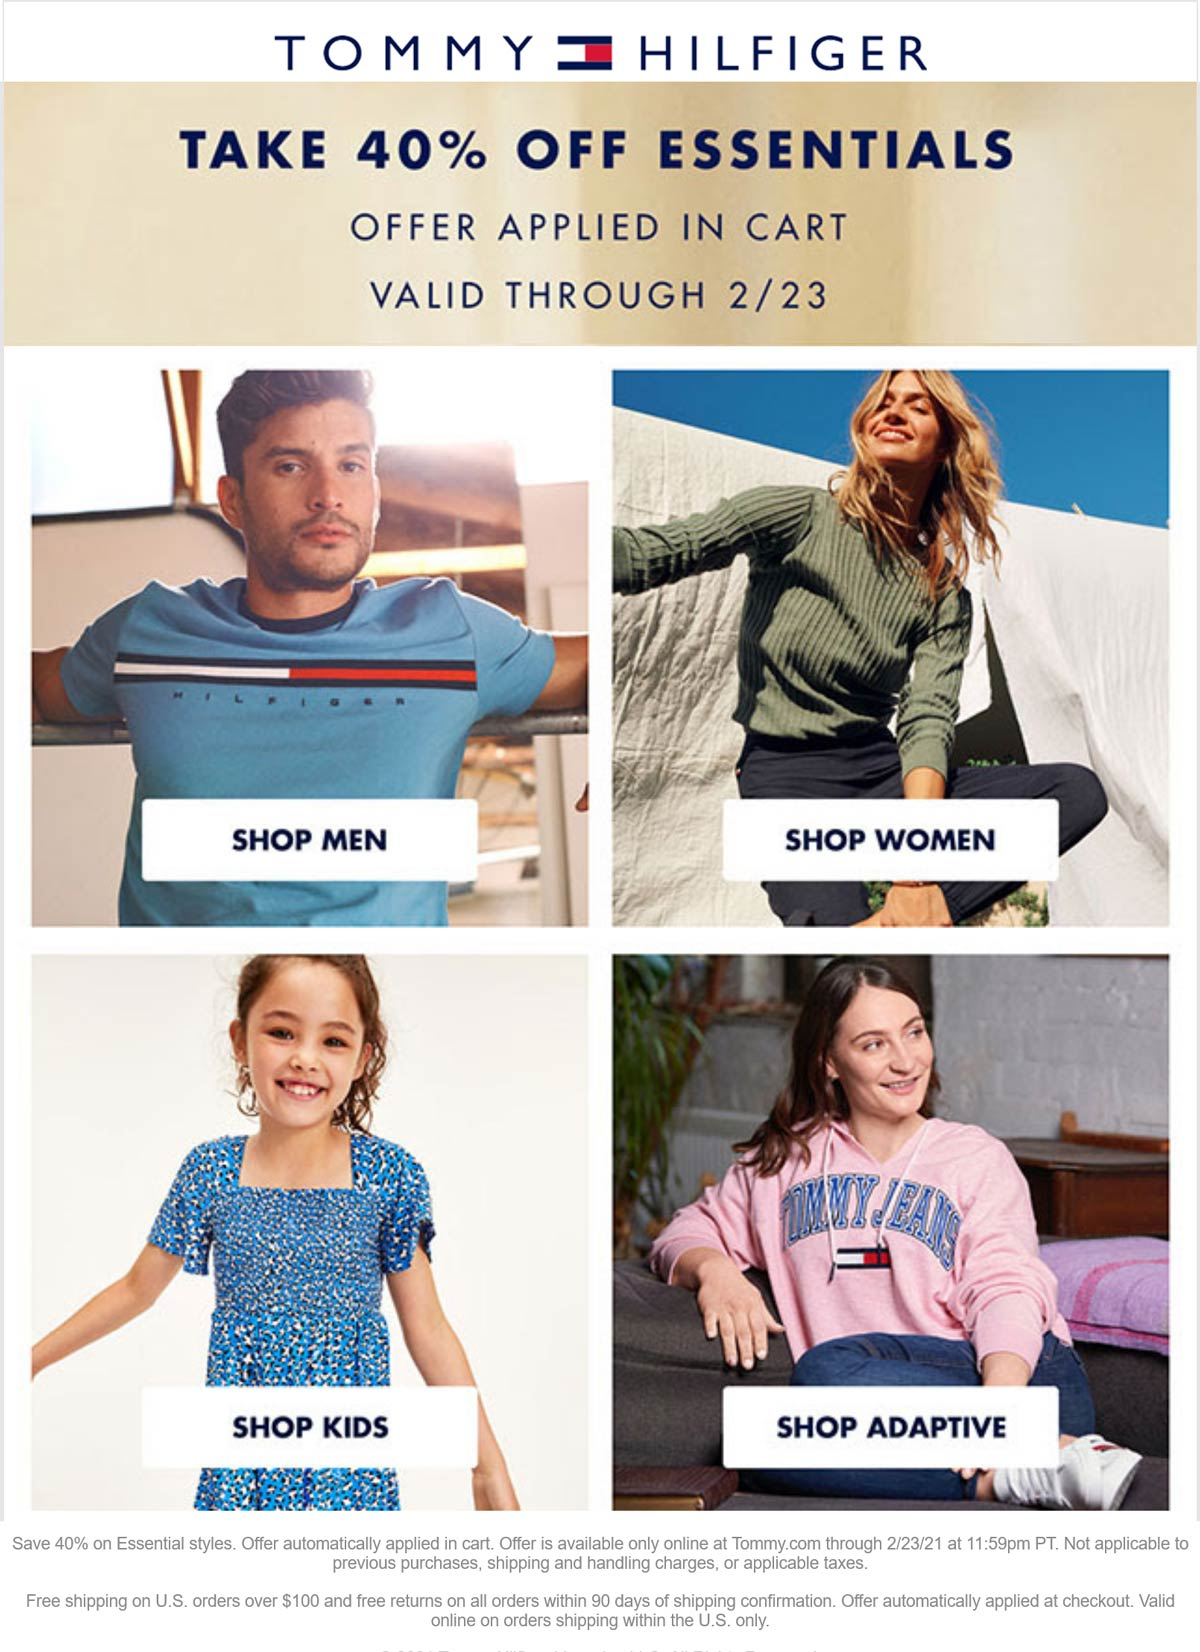 Tommy Hilfiger stores Coupon  40% off essentials online at Tommy Hilfiger #tommyhilfiger